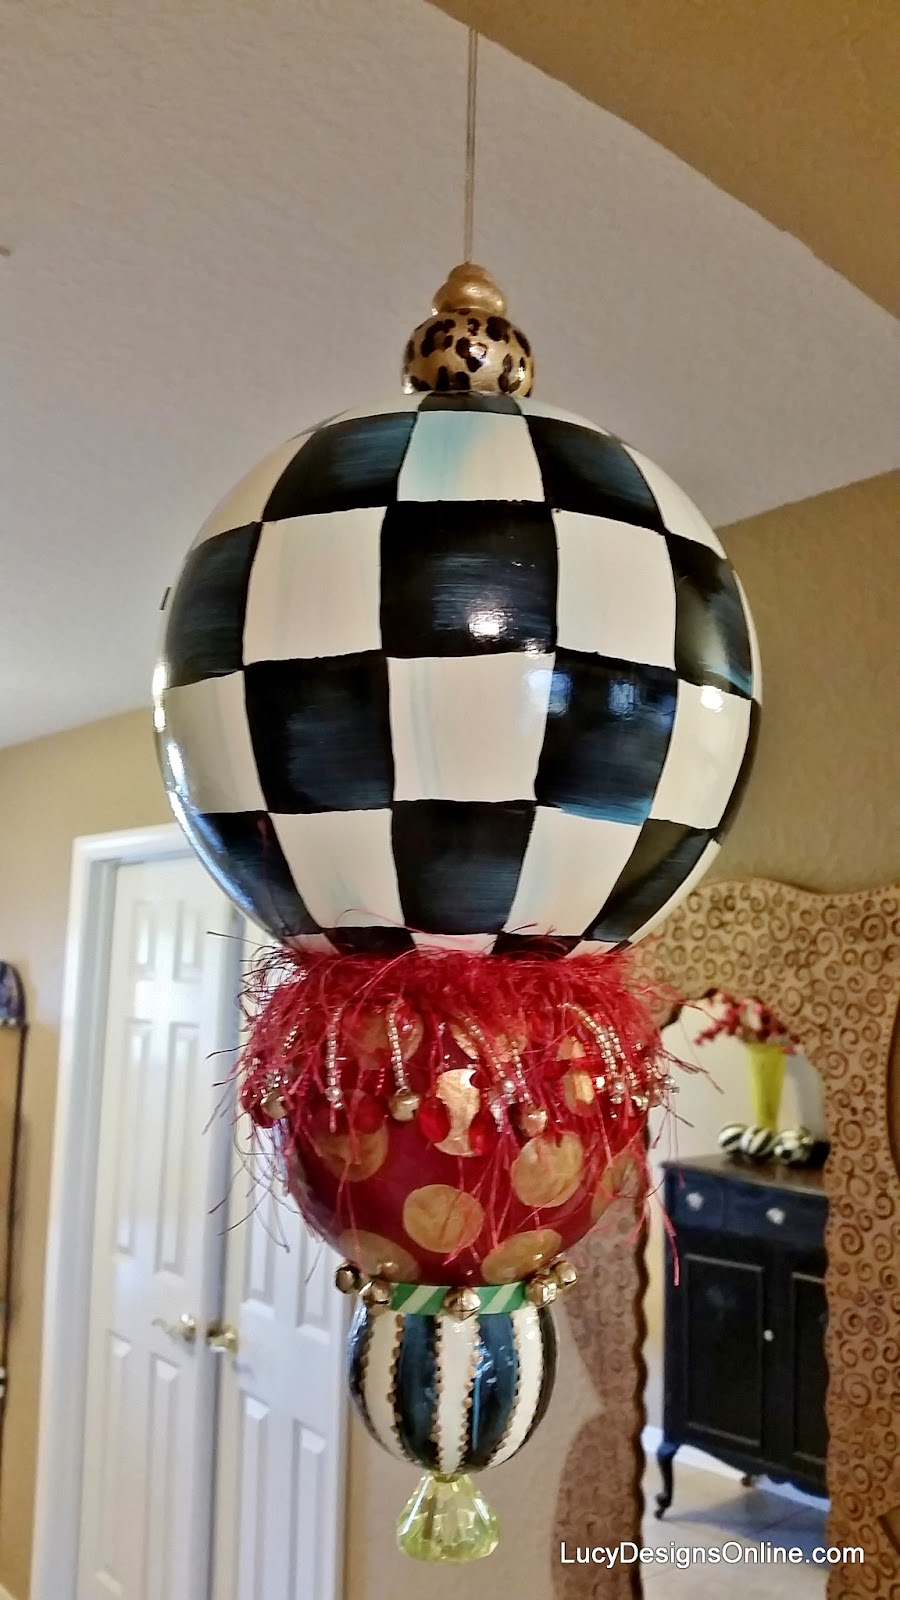 whimsical giant painted ornaments